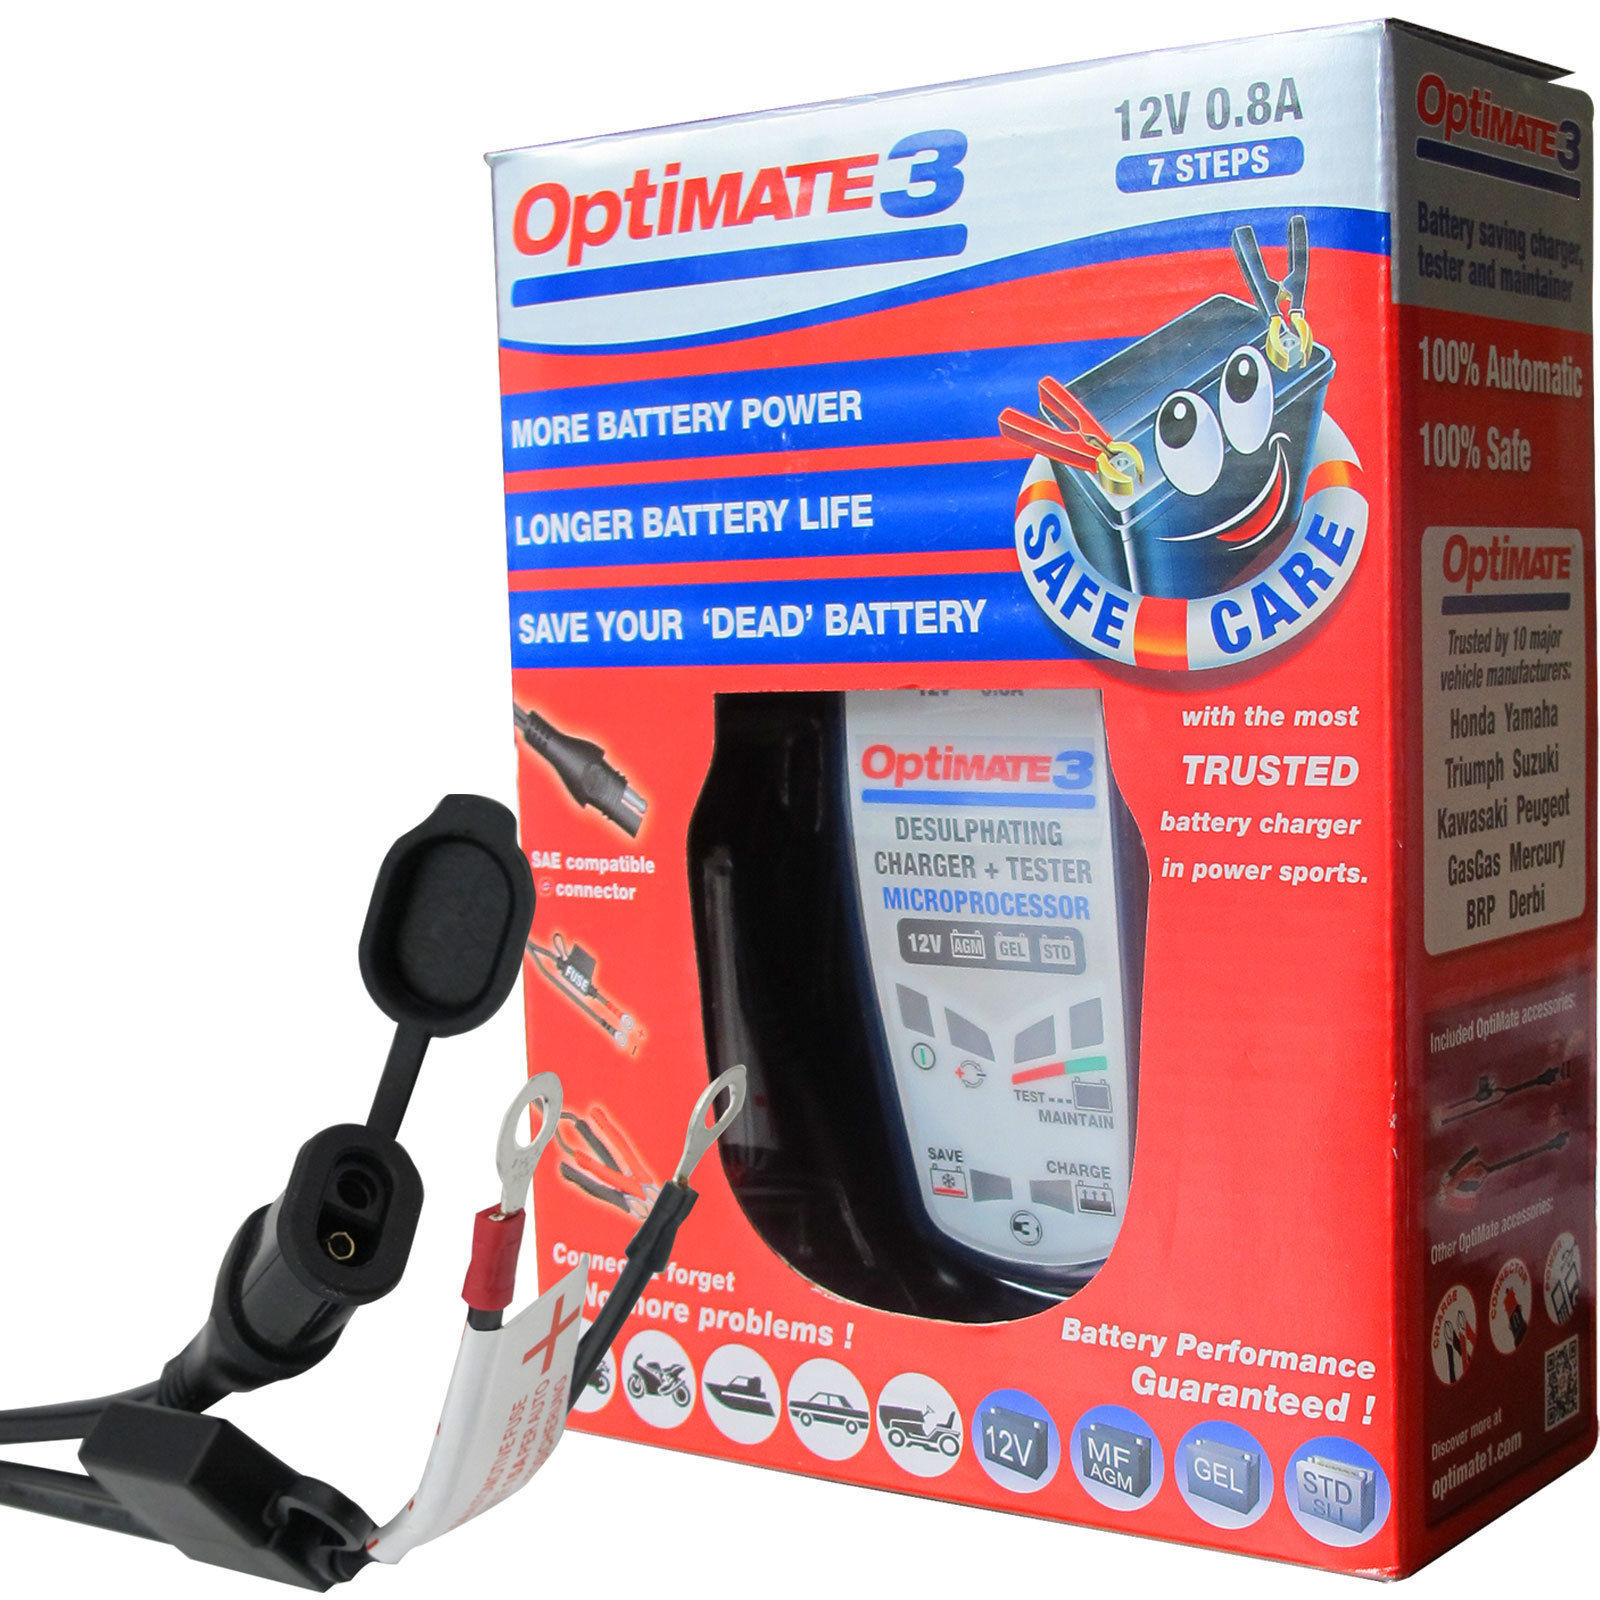 was 3+ New Optimate 3 12V Battery Charger and Tester for Motorcycle Batteries